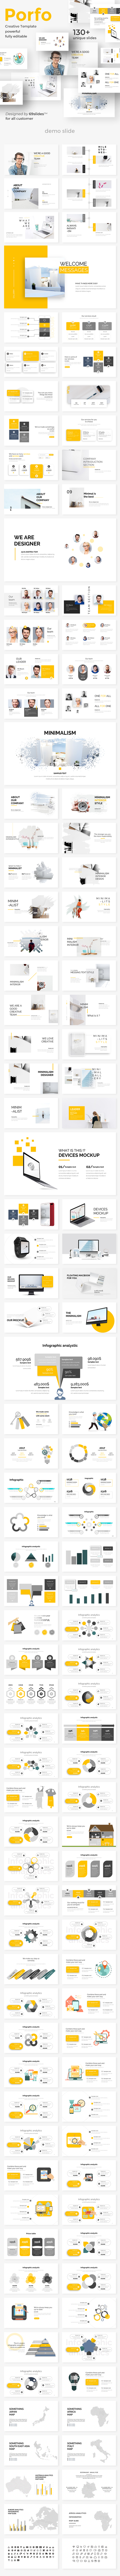 Porfo Creative Powerpoint Template - Creative PowerPoint Templates